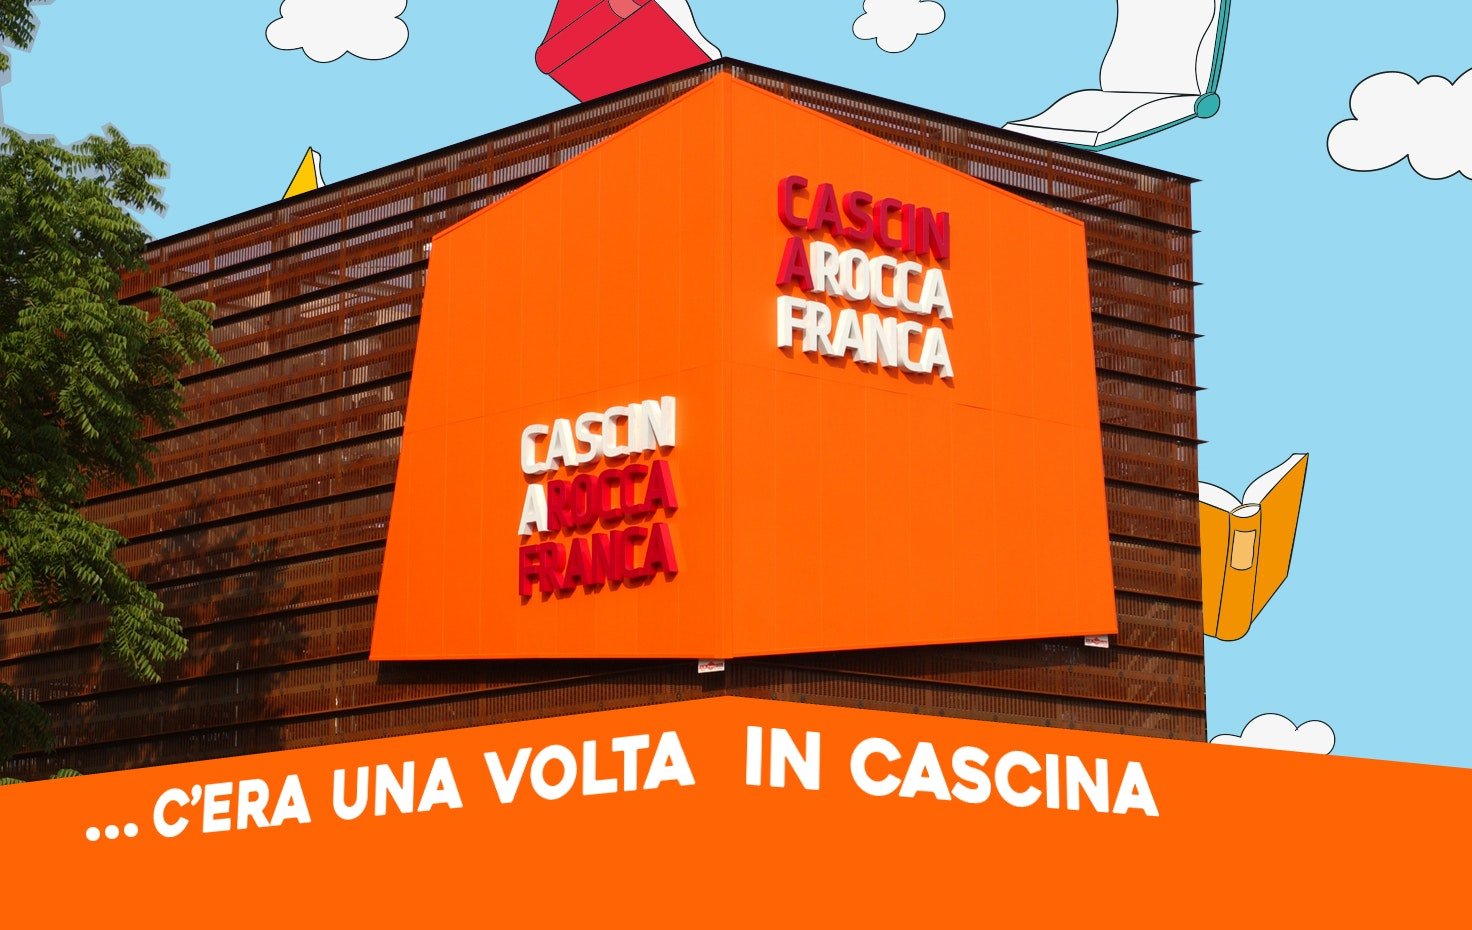 C'era una volta in cascina